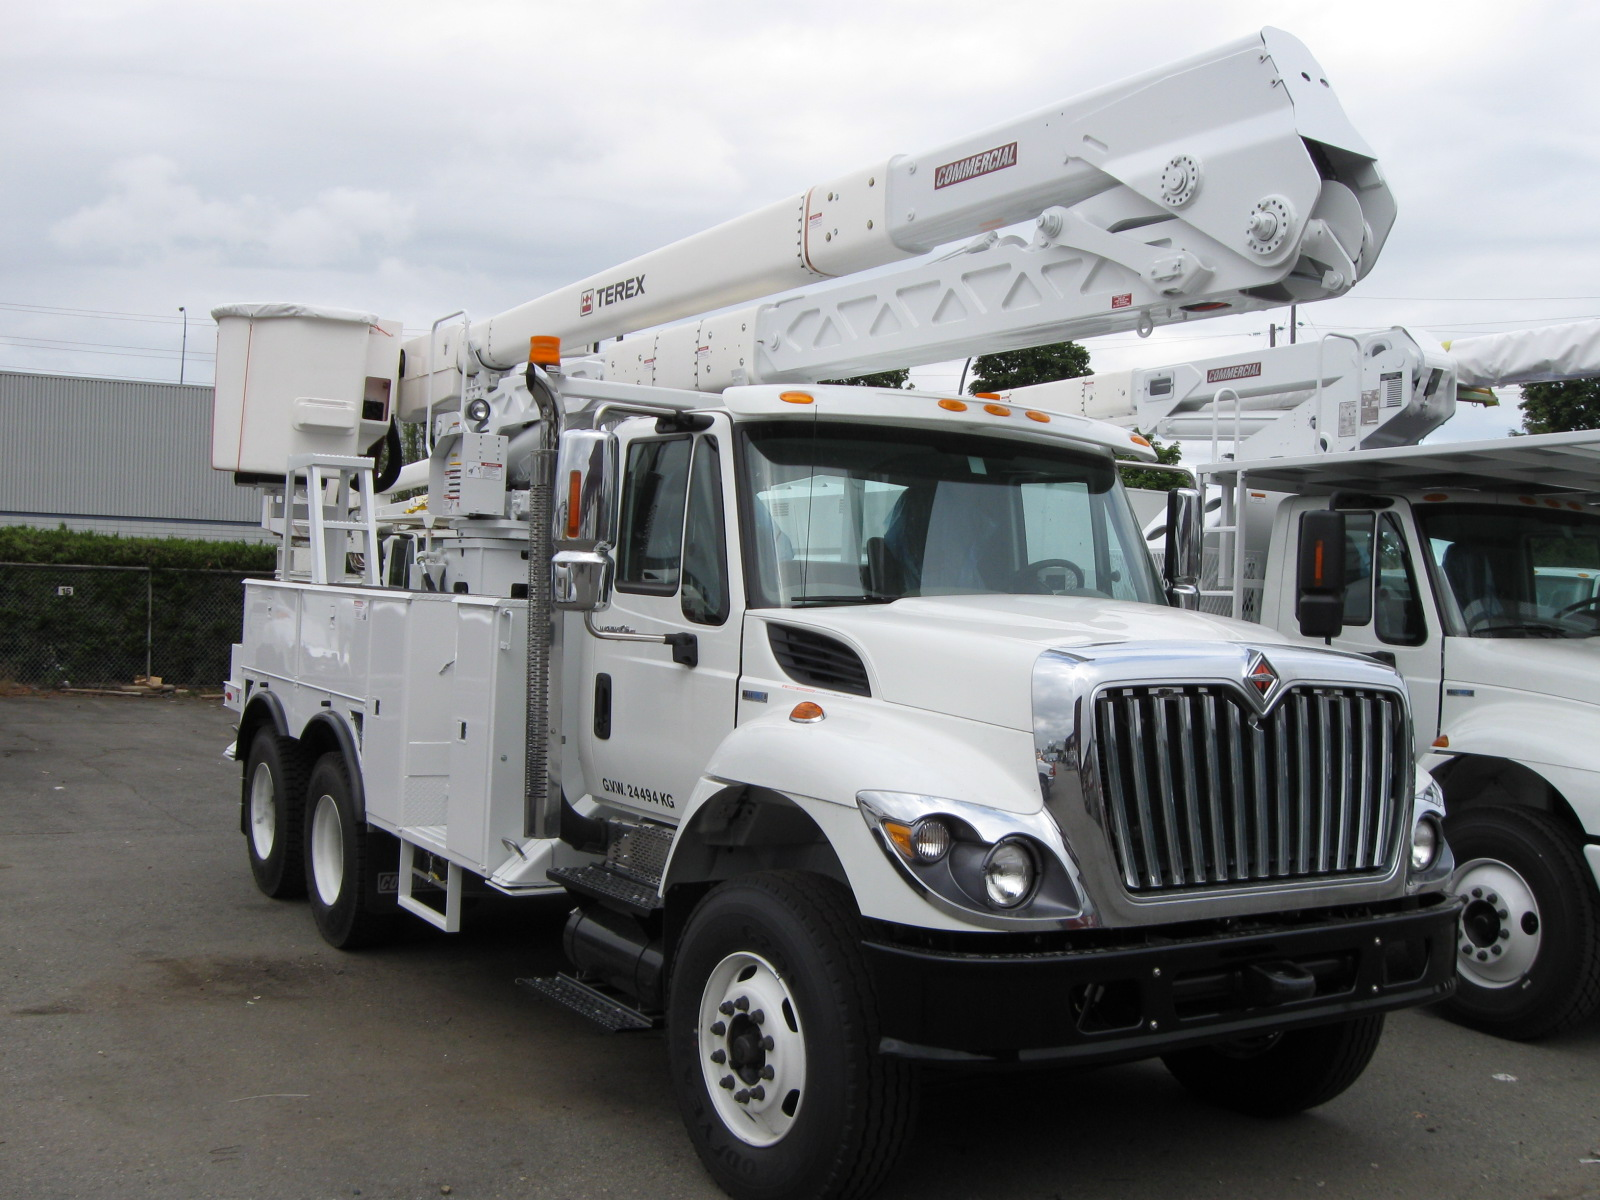 Boom Lift Truck : Aerial lifts for trucks commercial truck equipment